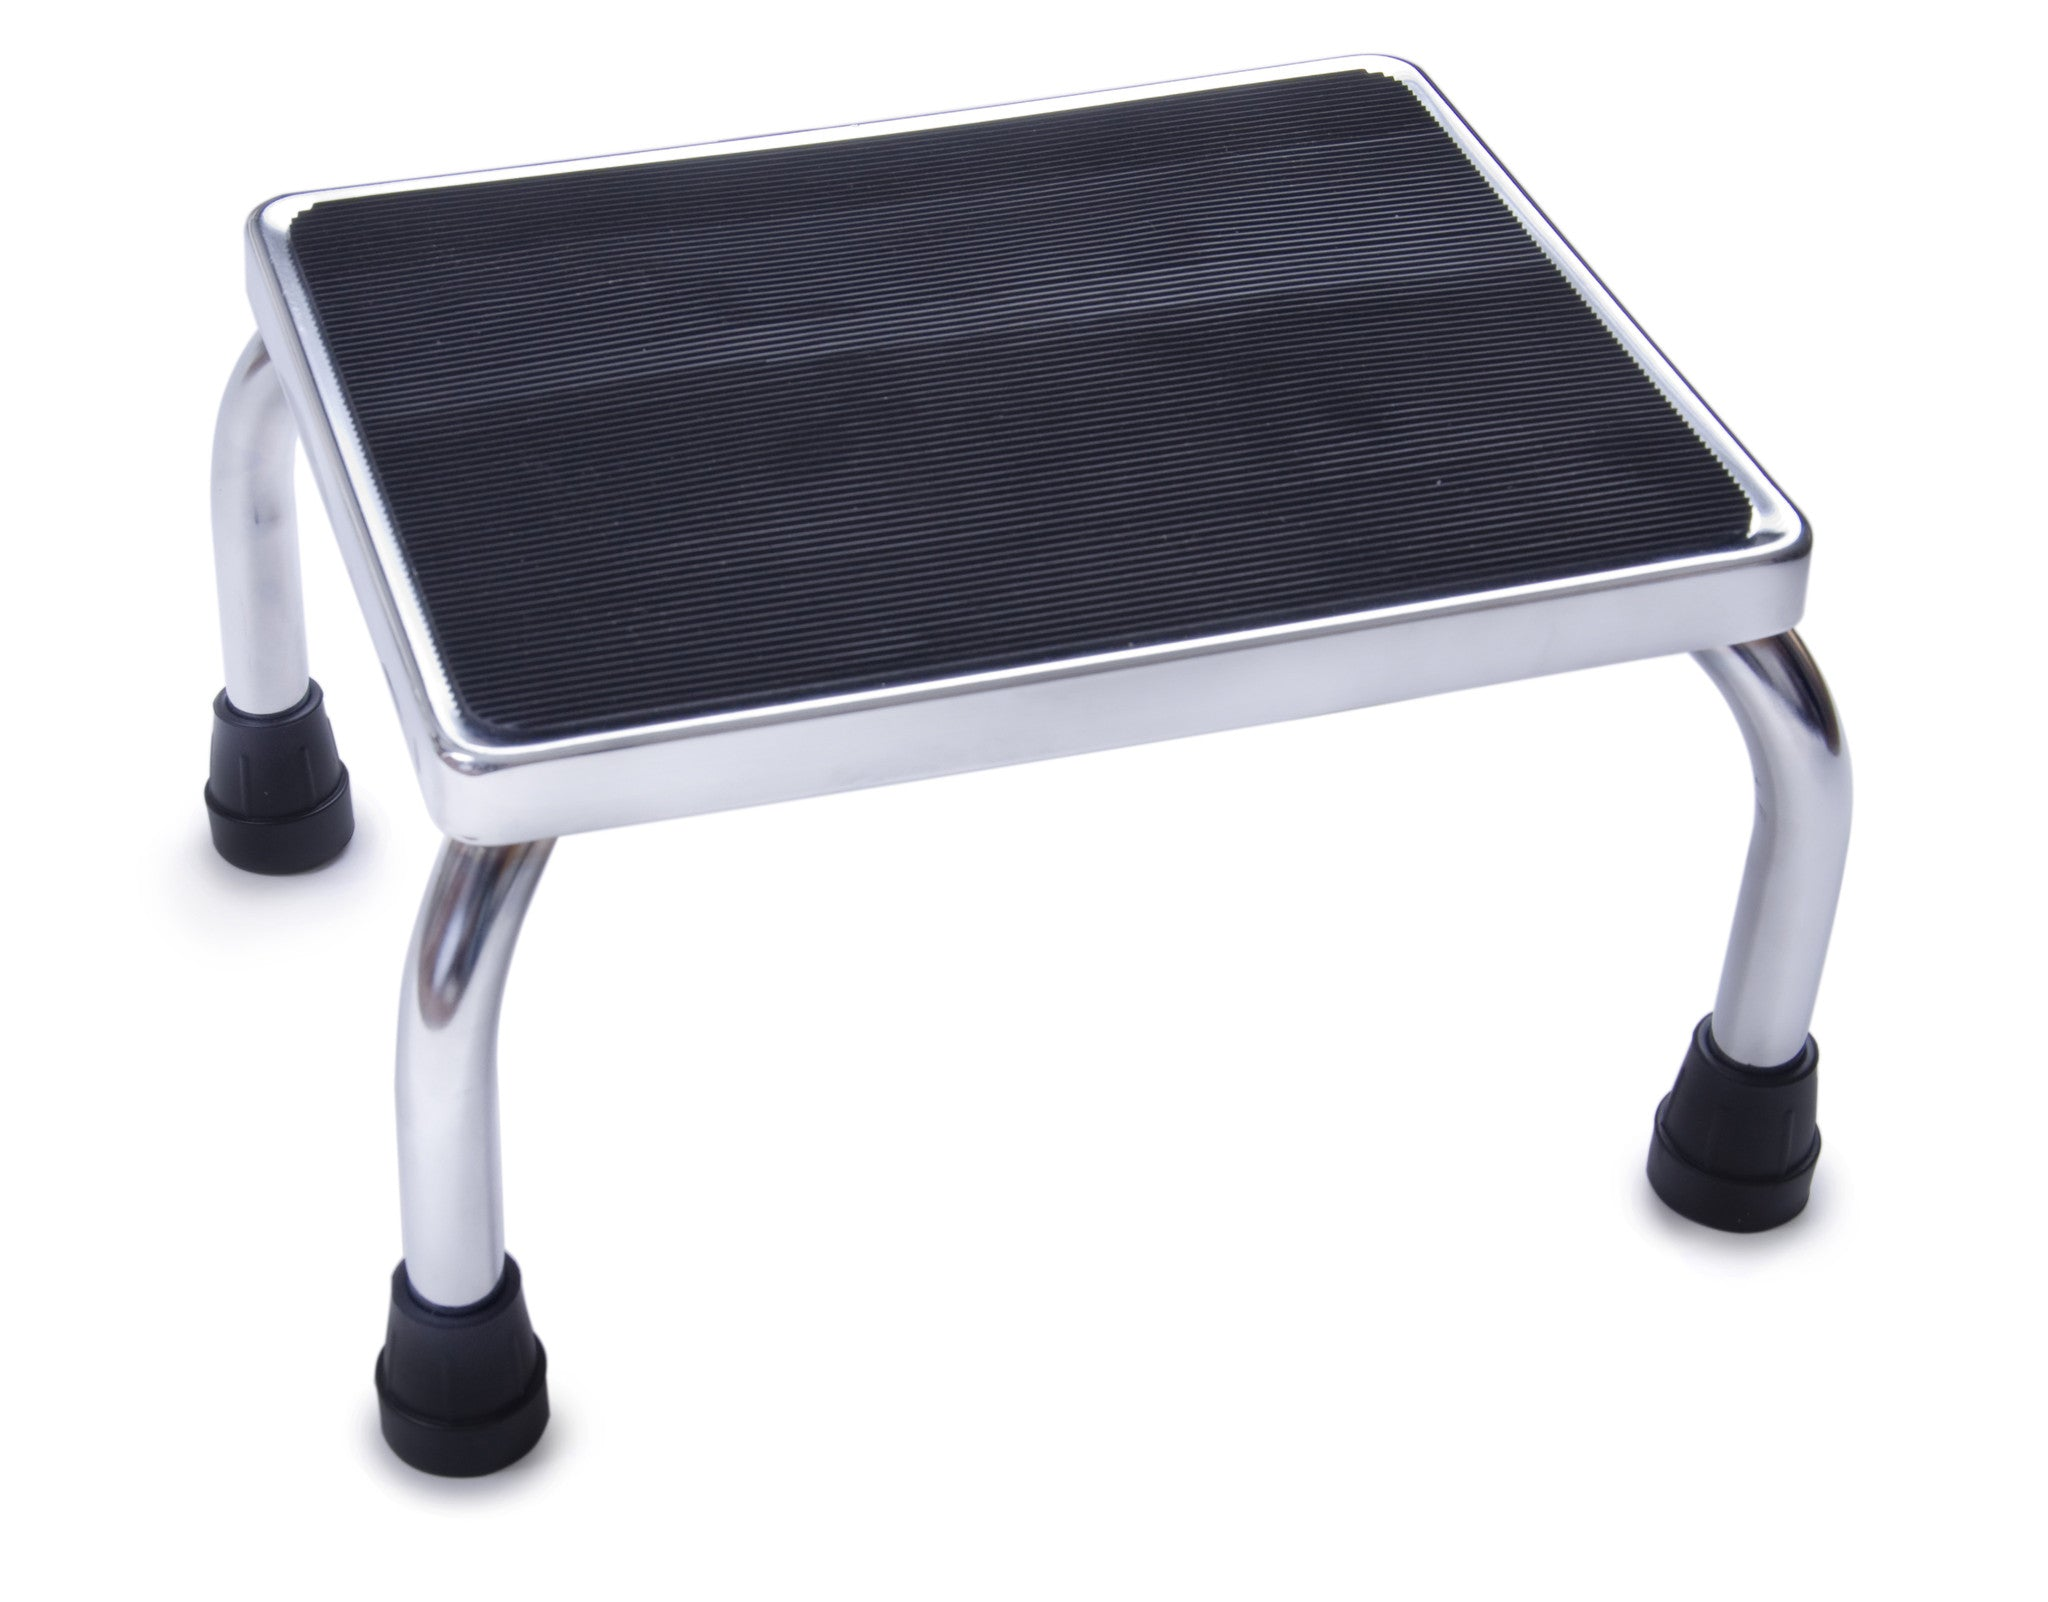 FOOTSTOOL,CHROME STL W/ RUBBER MAT,350LB